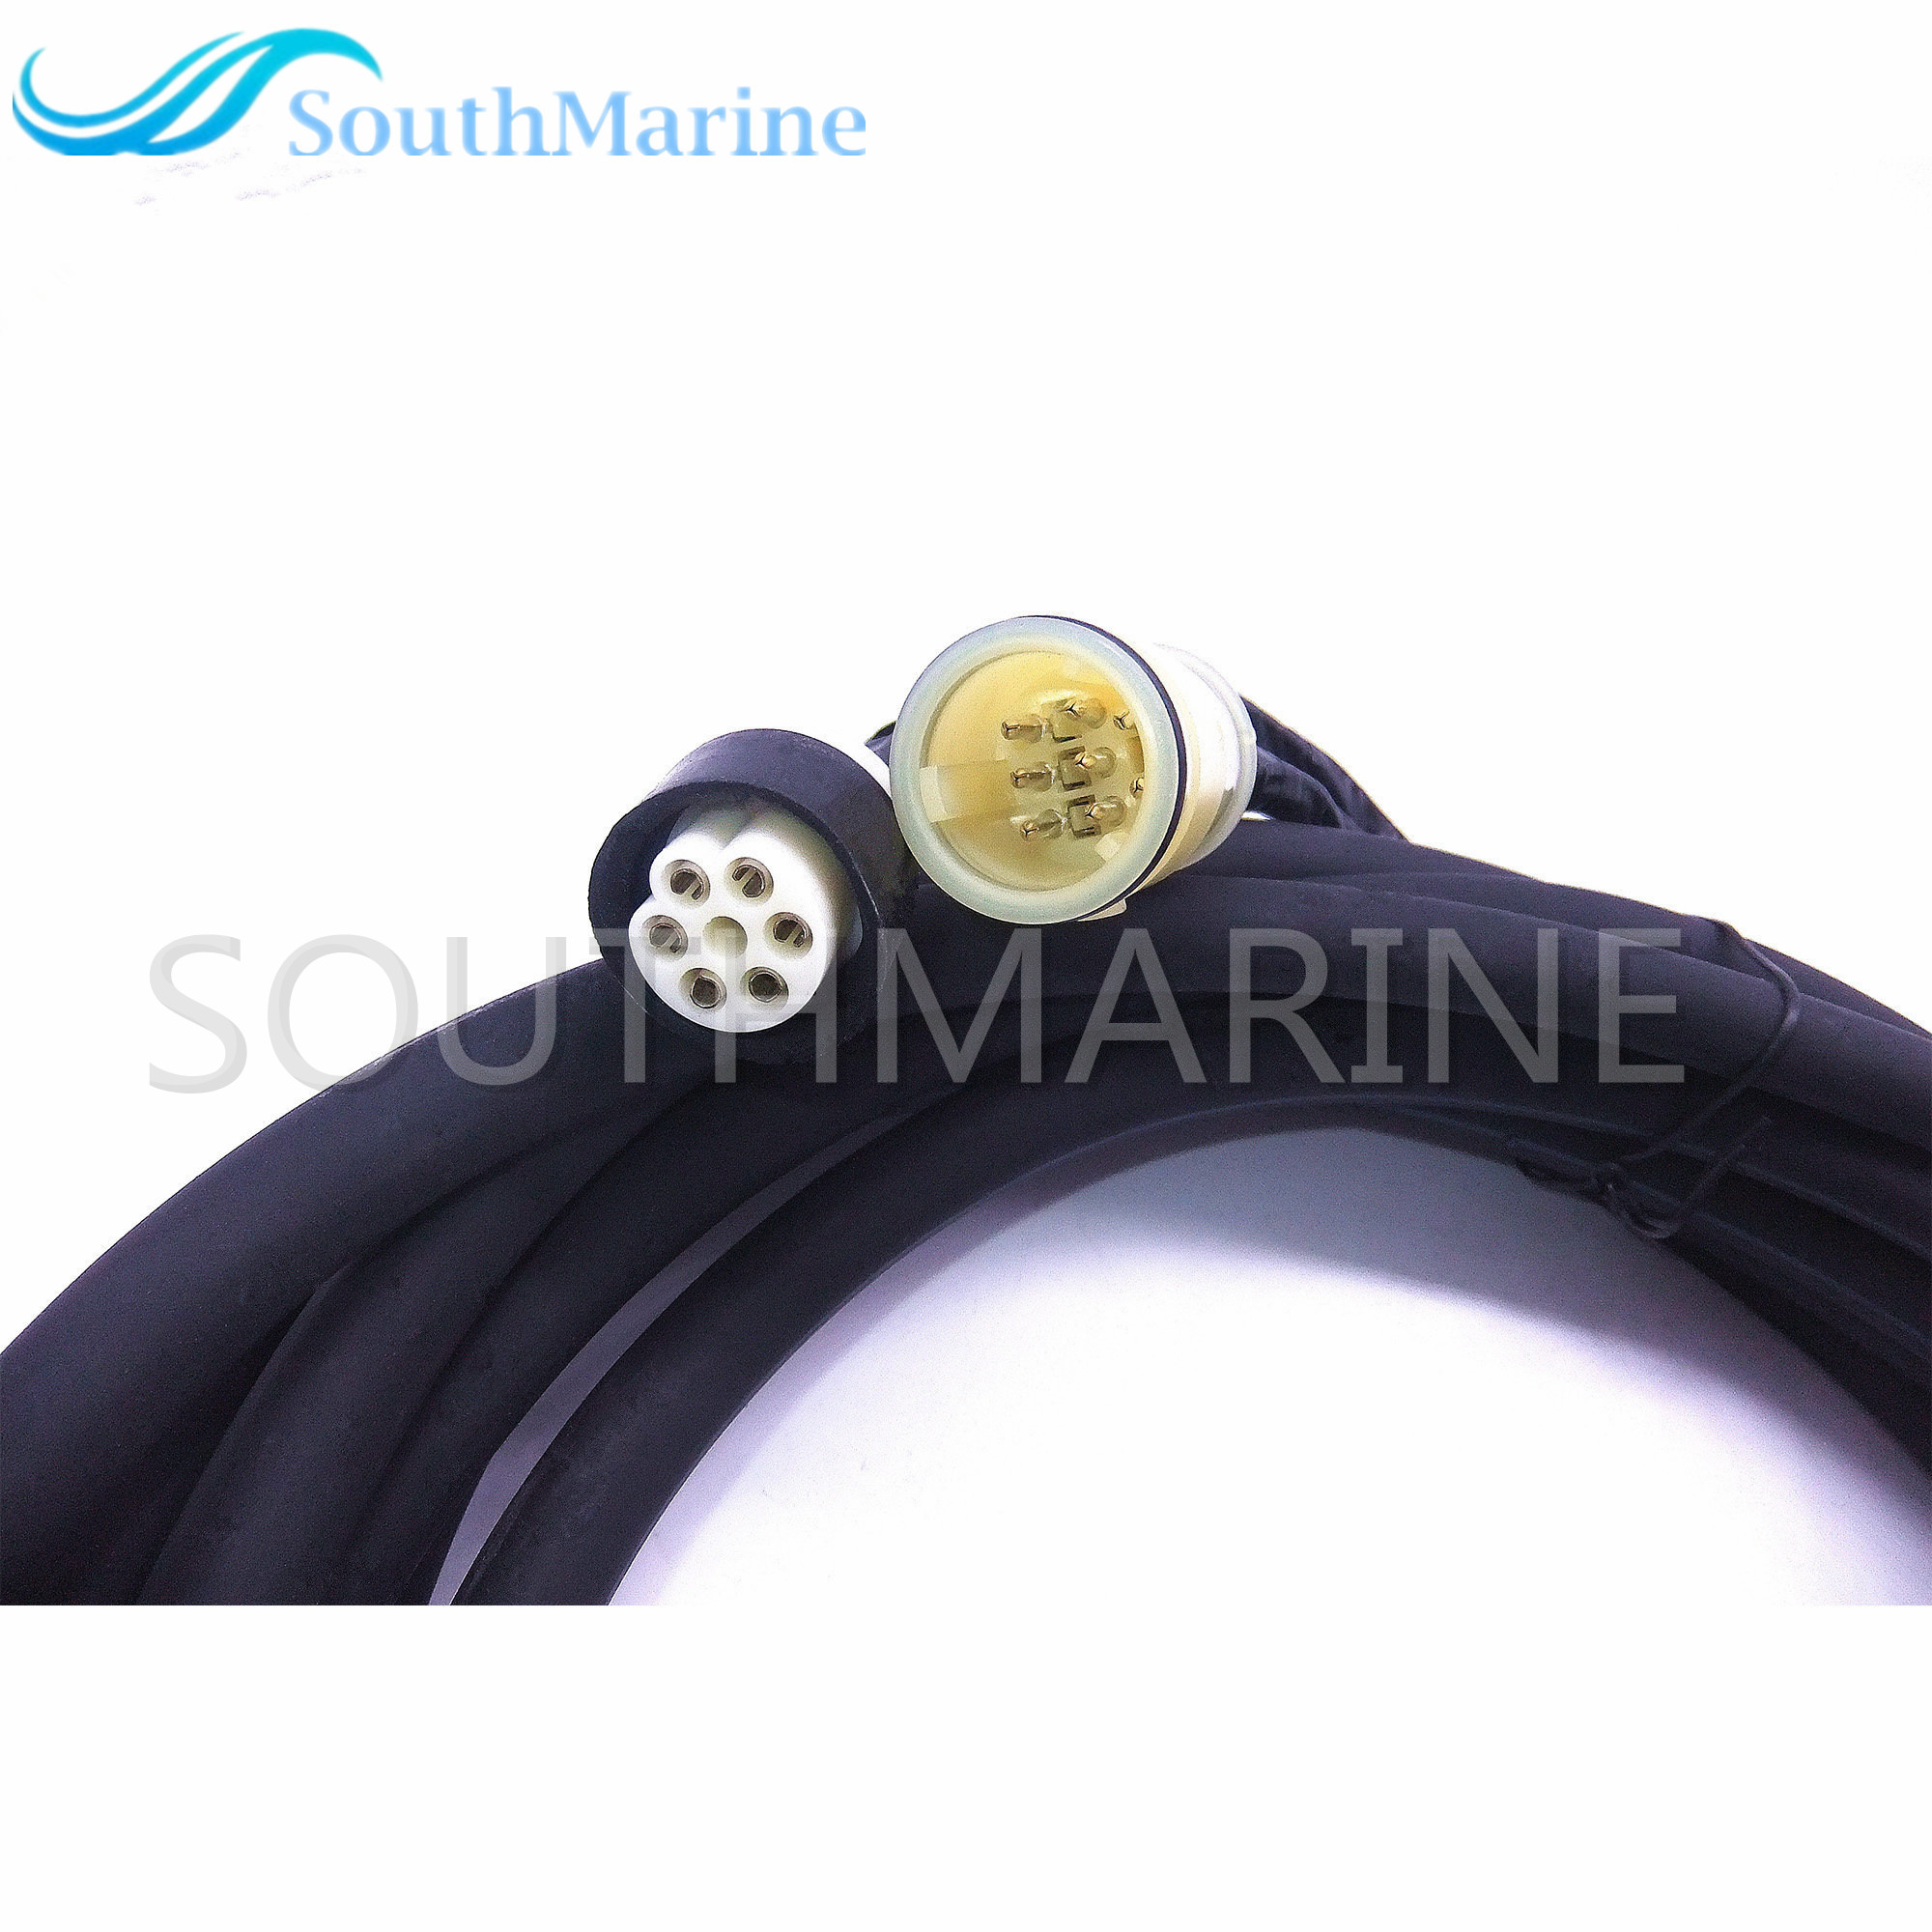 6X3-8258A-10 688-8258A-60-00 20ft Main Wiring Harness 10P for Yamaha Outboard Motor 704 Remote Control 6M